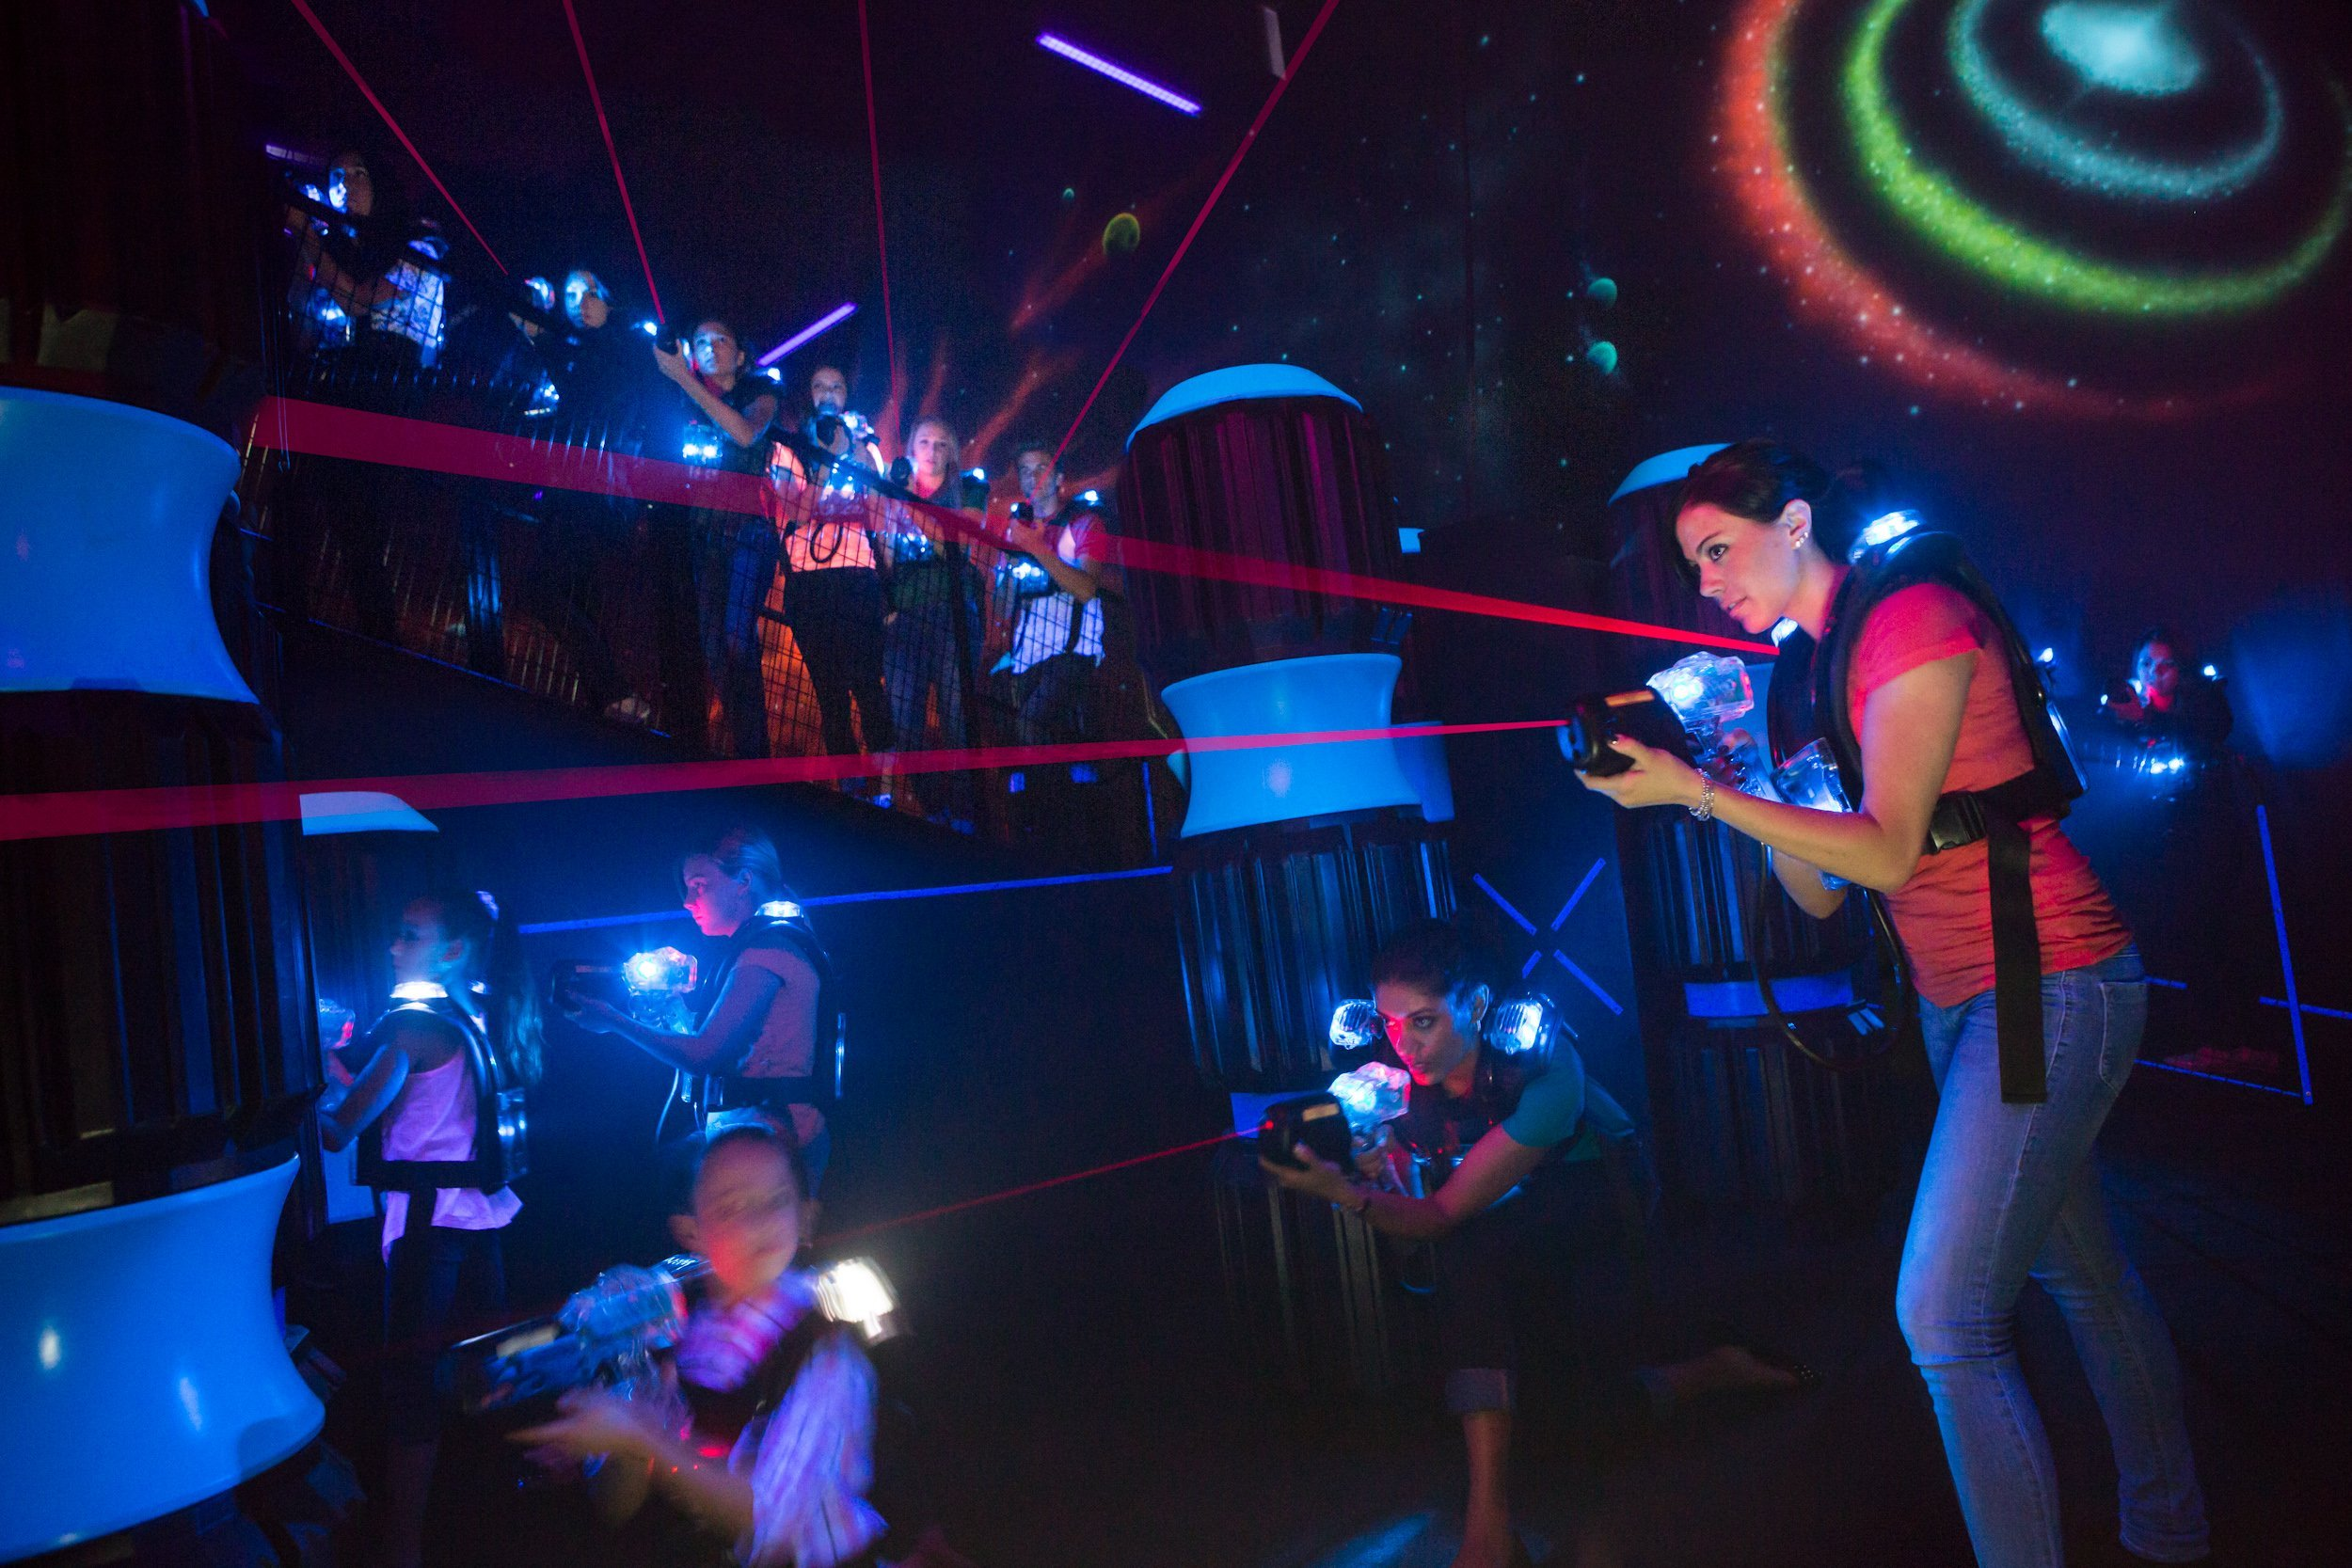 Secrets to New Employee Training<br> How Laser Tag Venues Ready Hires